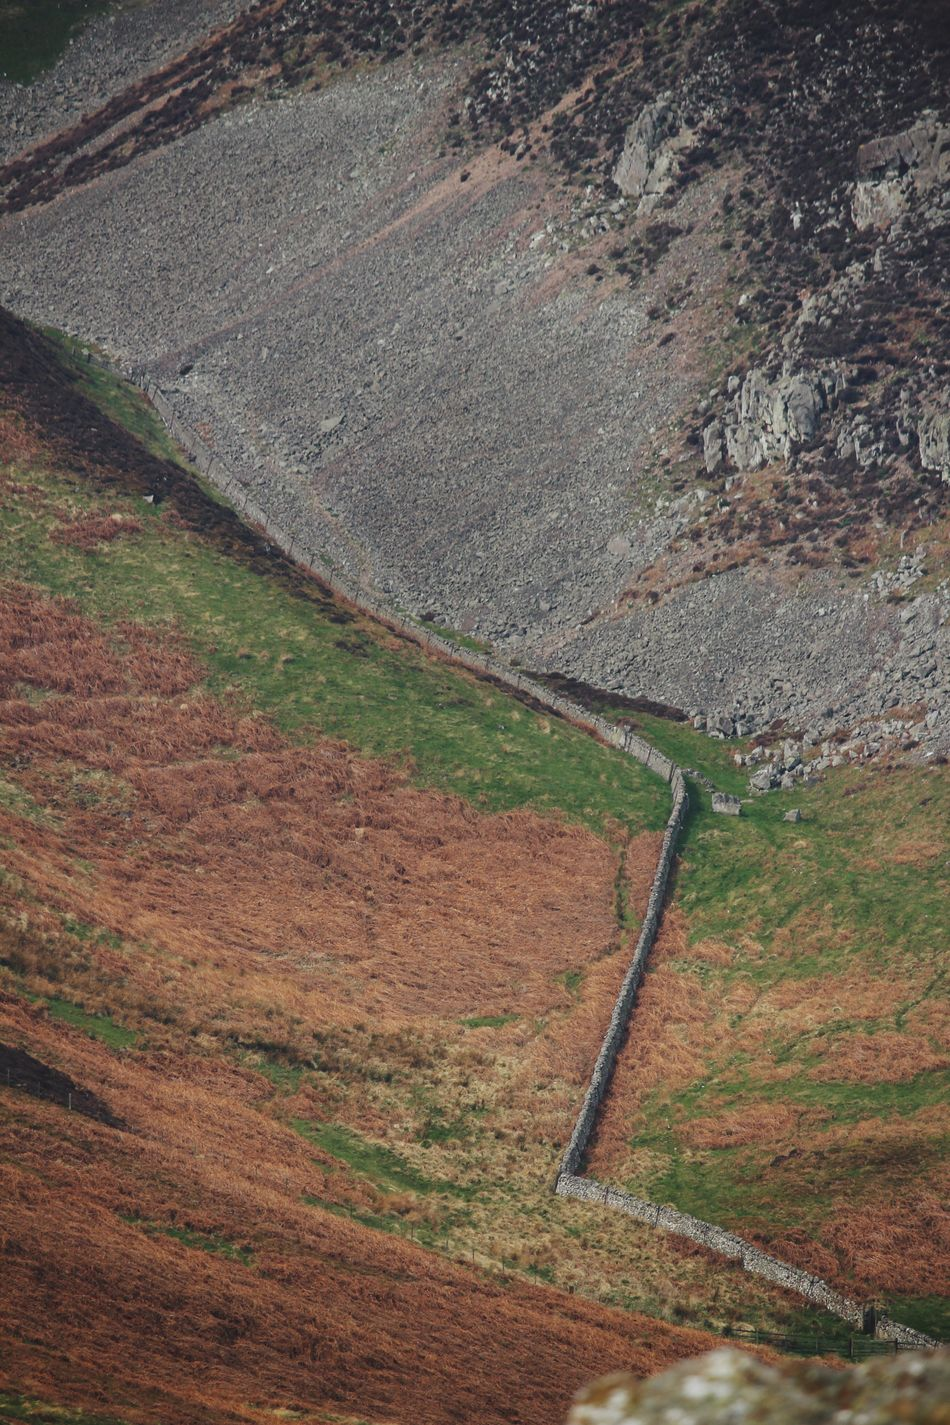 Zoom in Landscape High Angle View Nature Road No People Day Field Outdoors Scenics Tranquility Grass Beauty In Nature Mountain Drystonewall Farmland Northumberland National Park Geography Northumberland Hiking